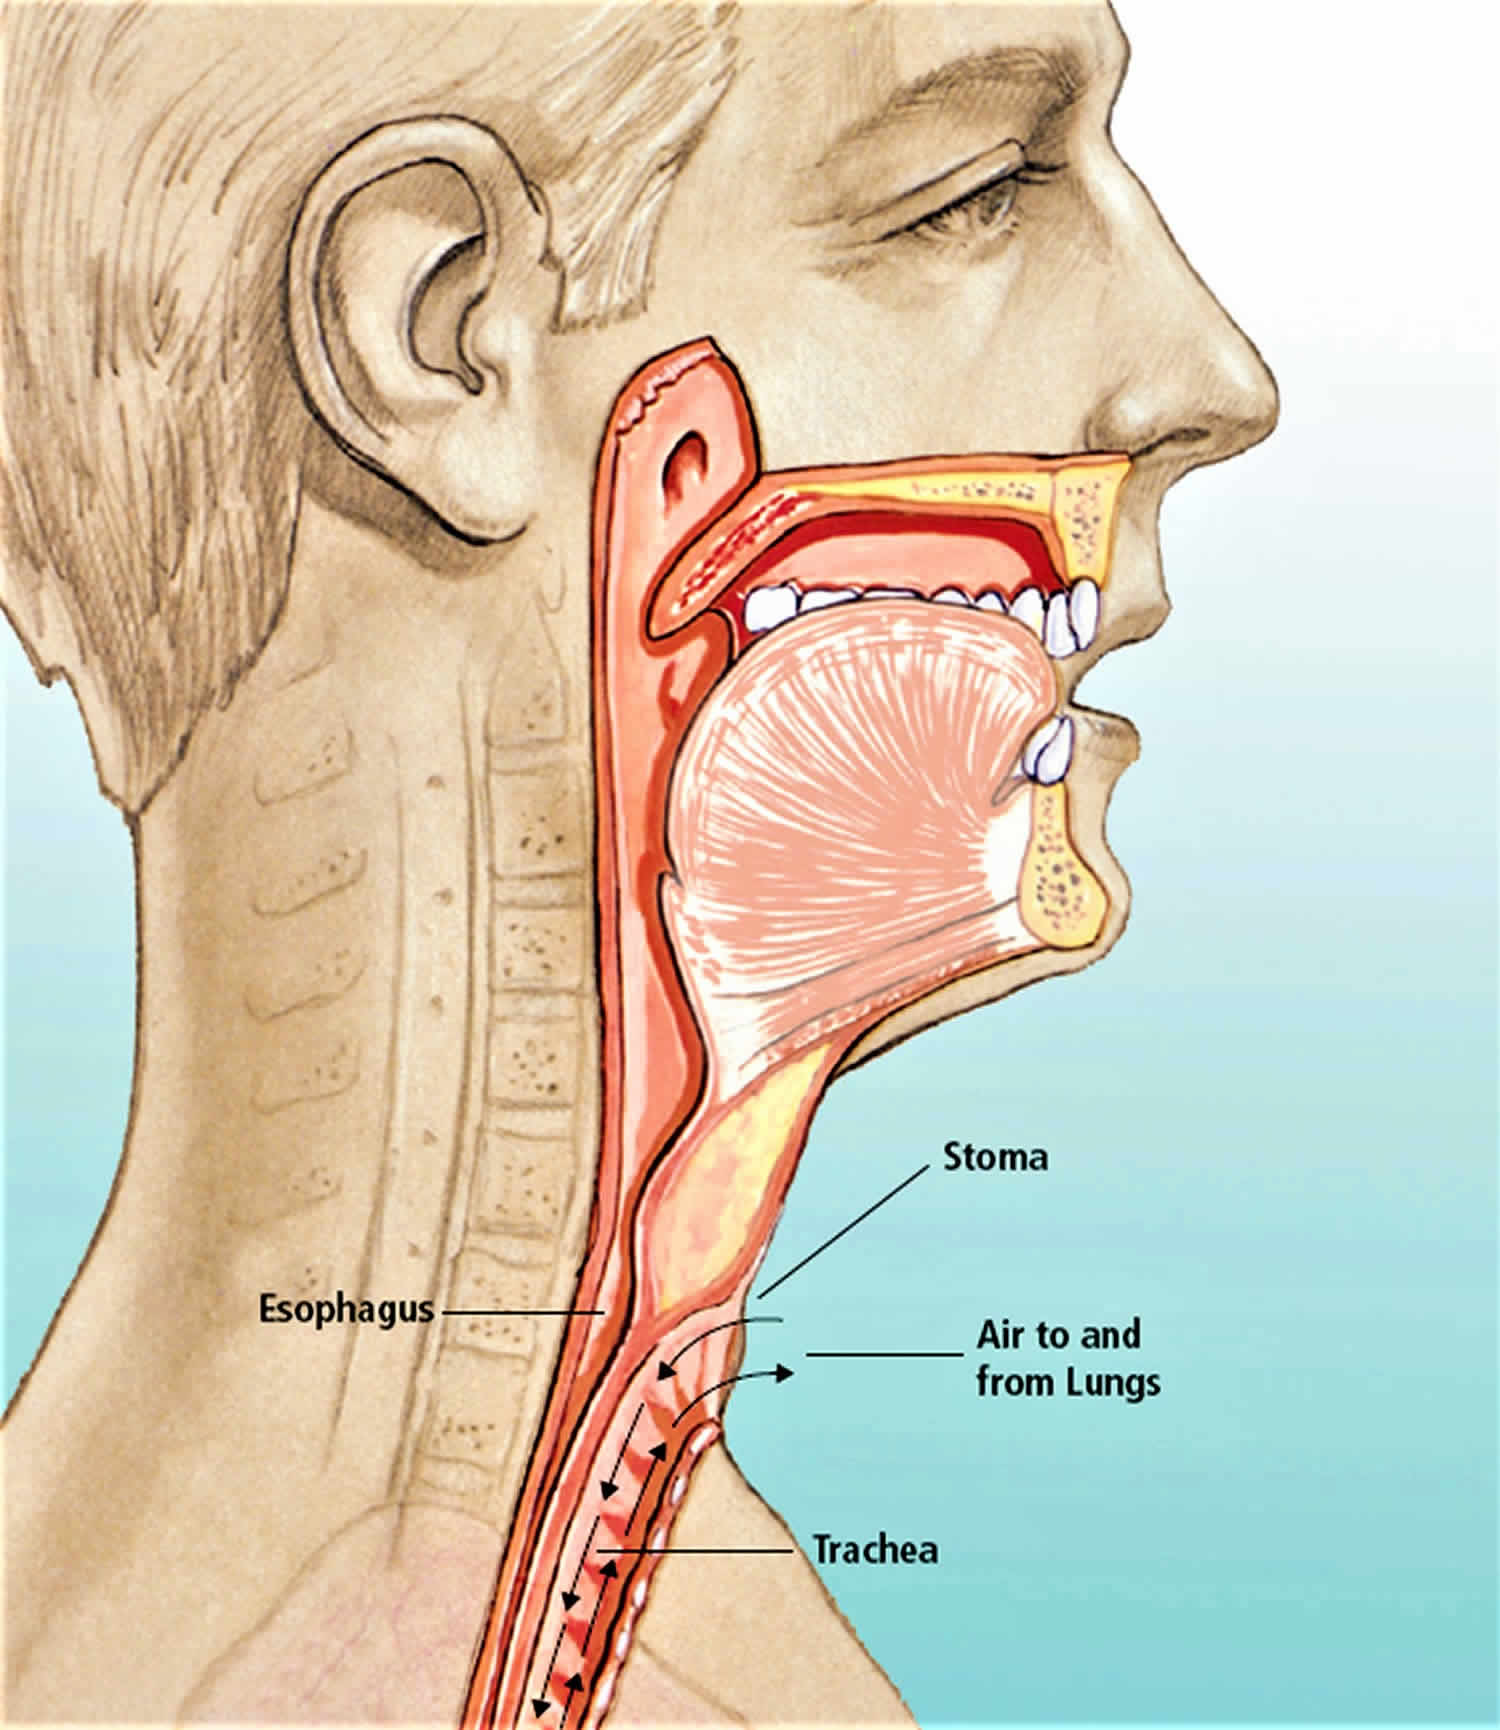 Total or partial laryngectomy procedure, complications